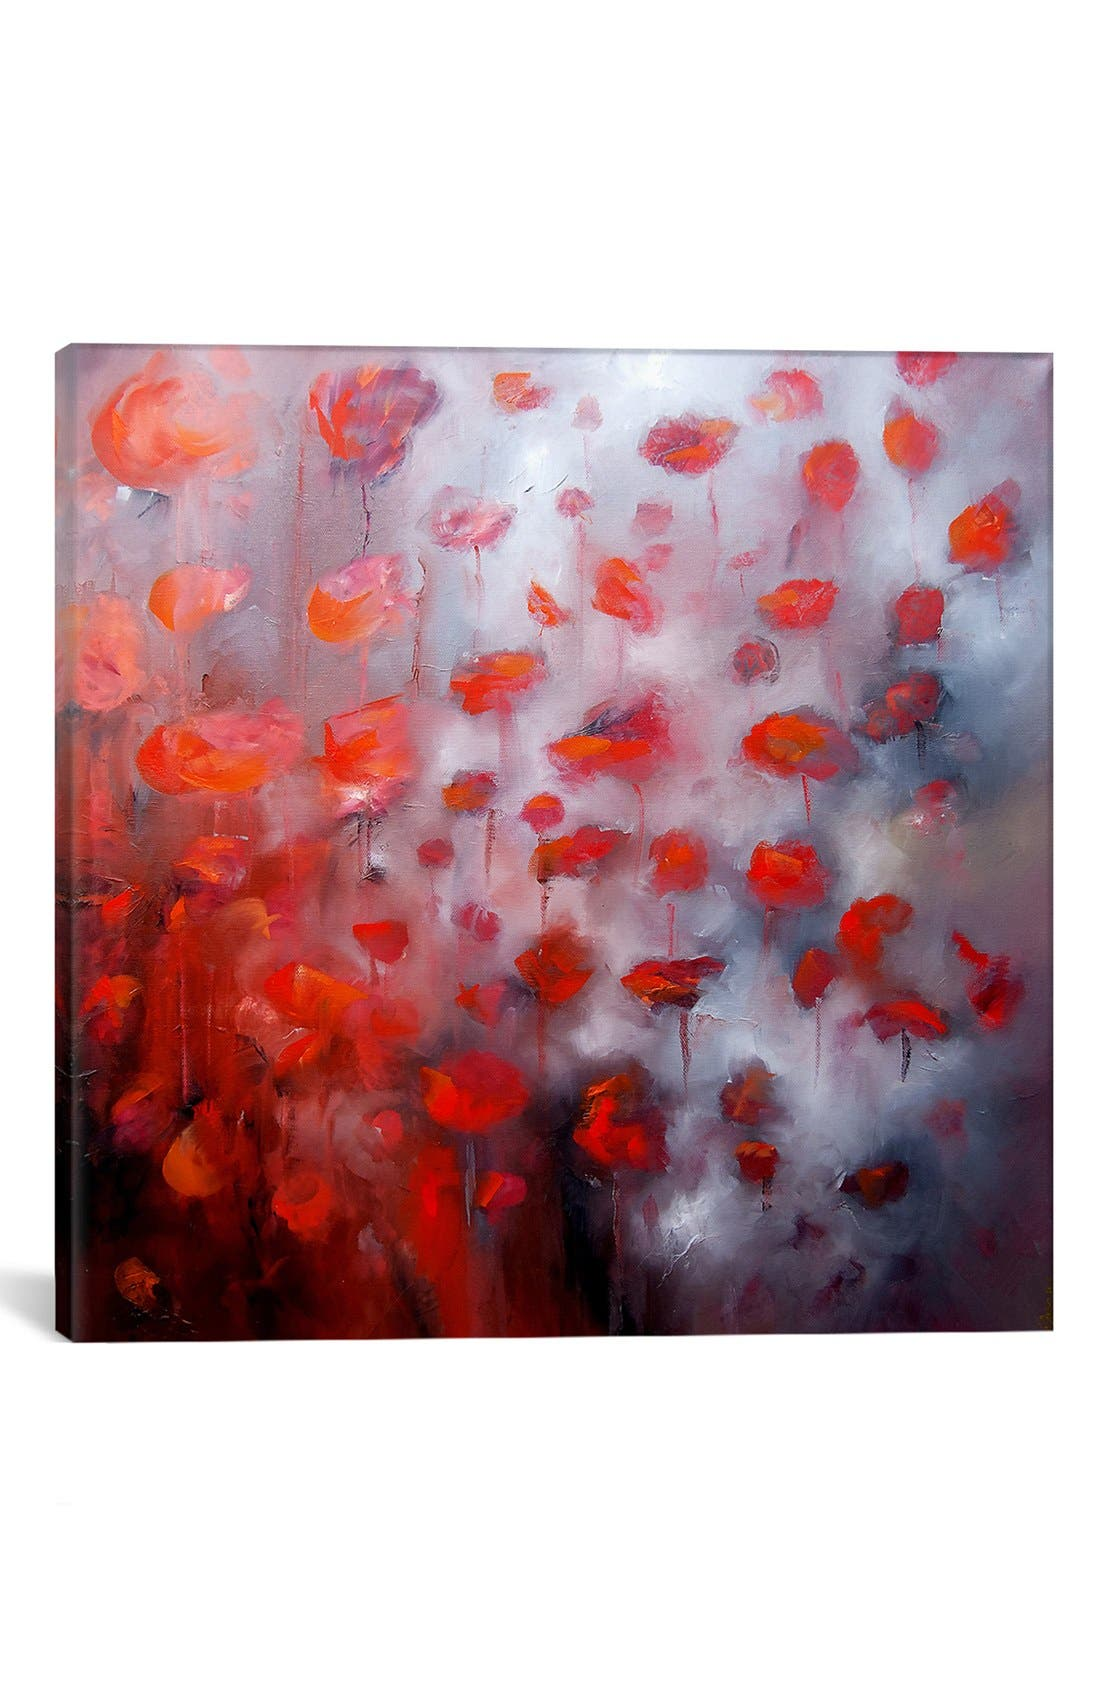 Alternate Image 1 Selected - iCanvas 'Petals in Wind' Giclée Print Canvas Art